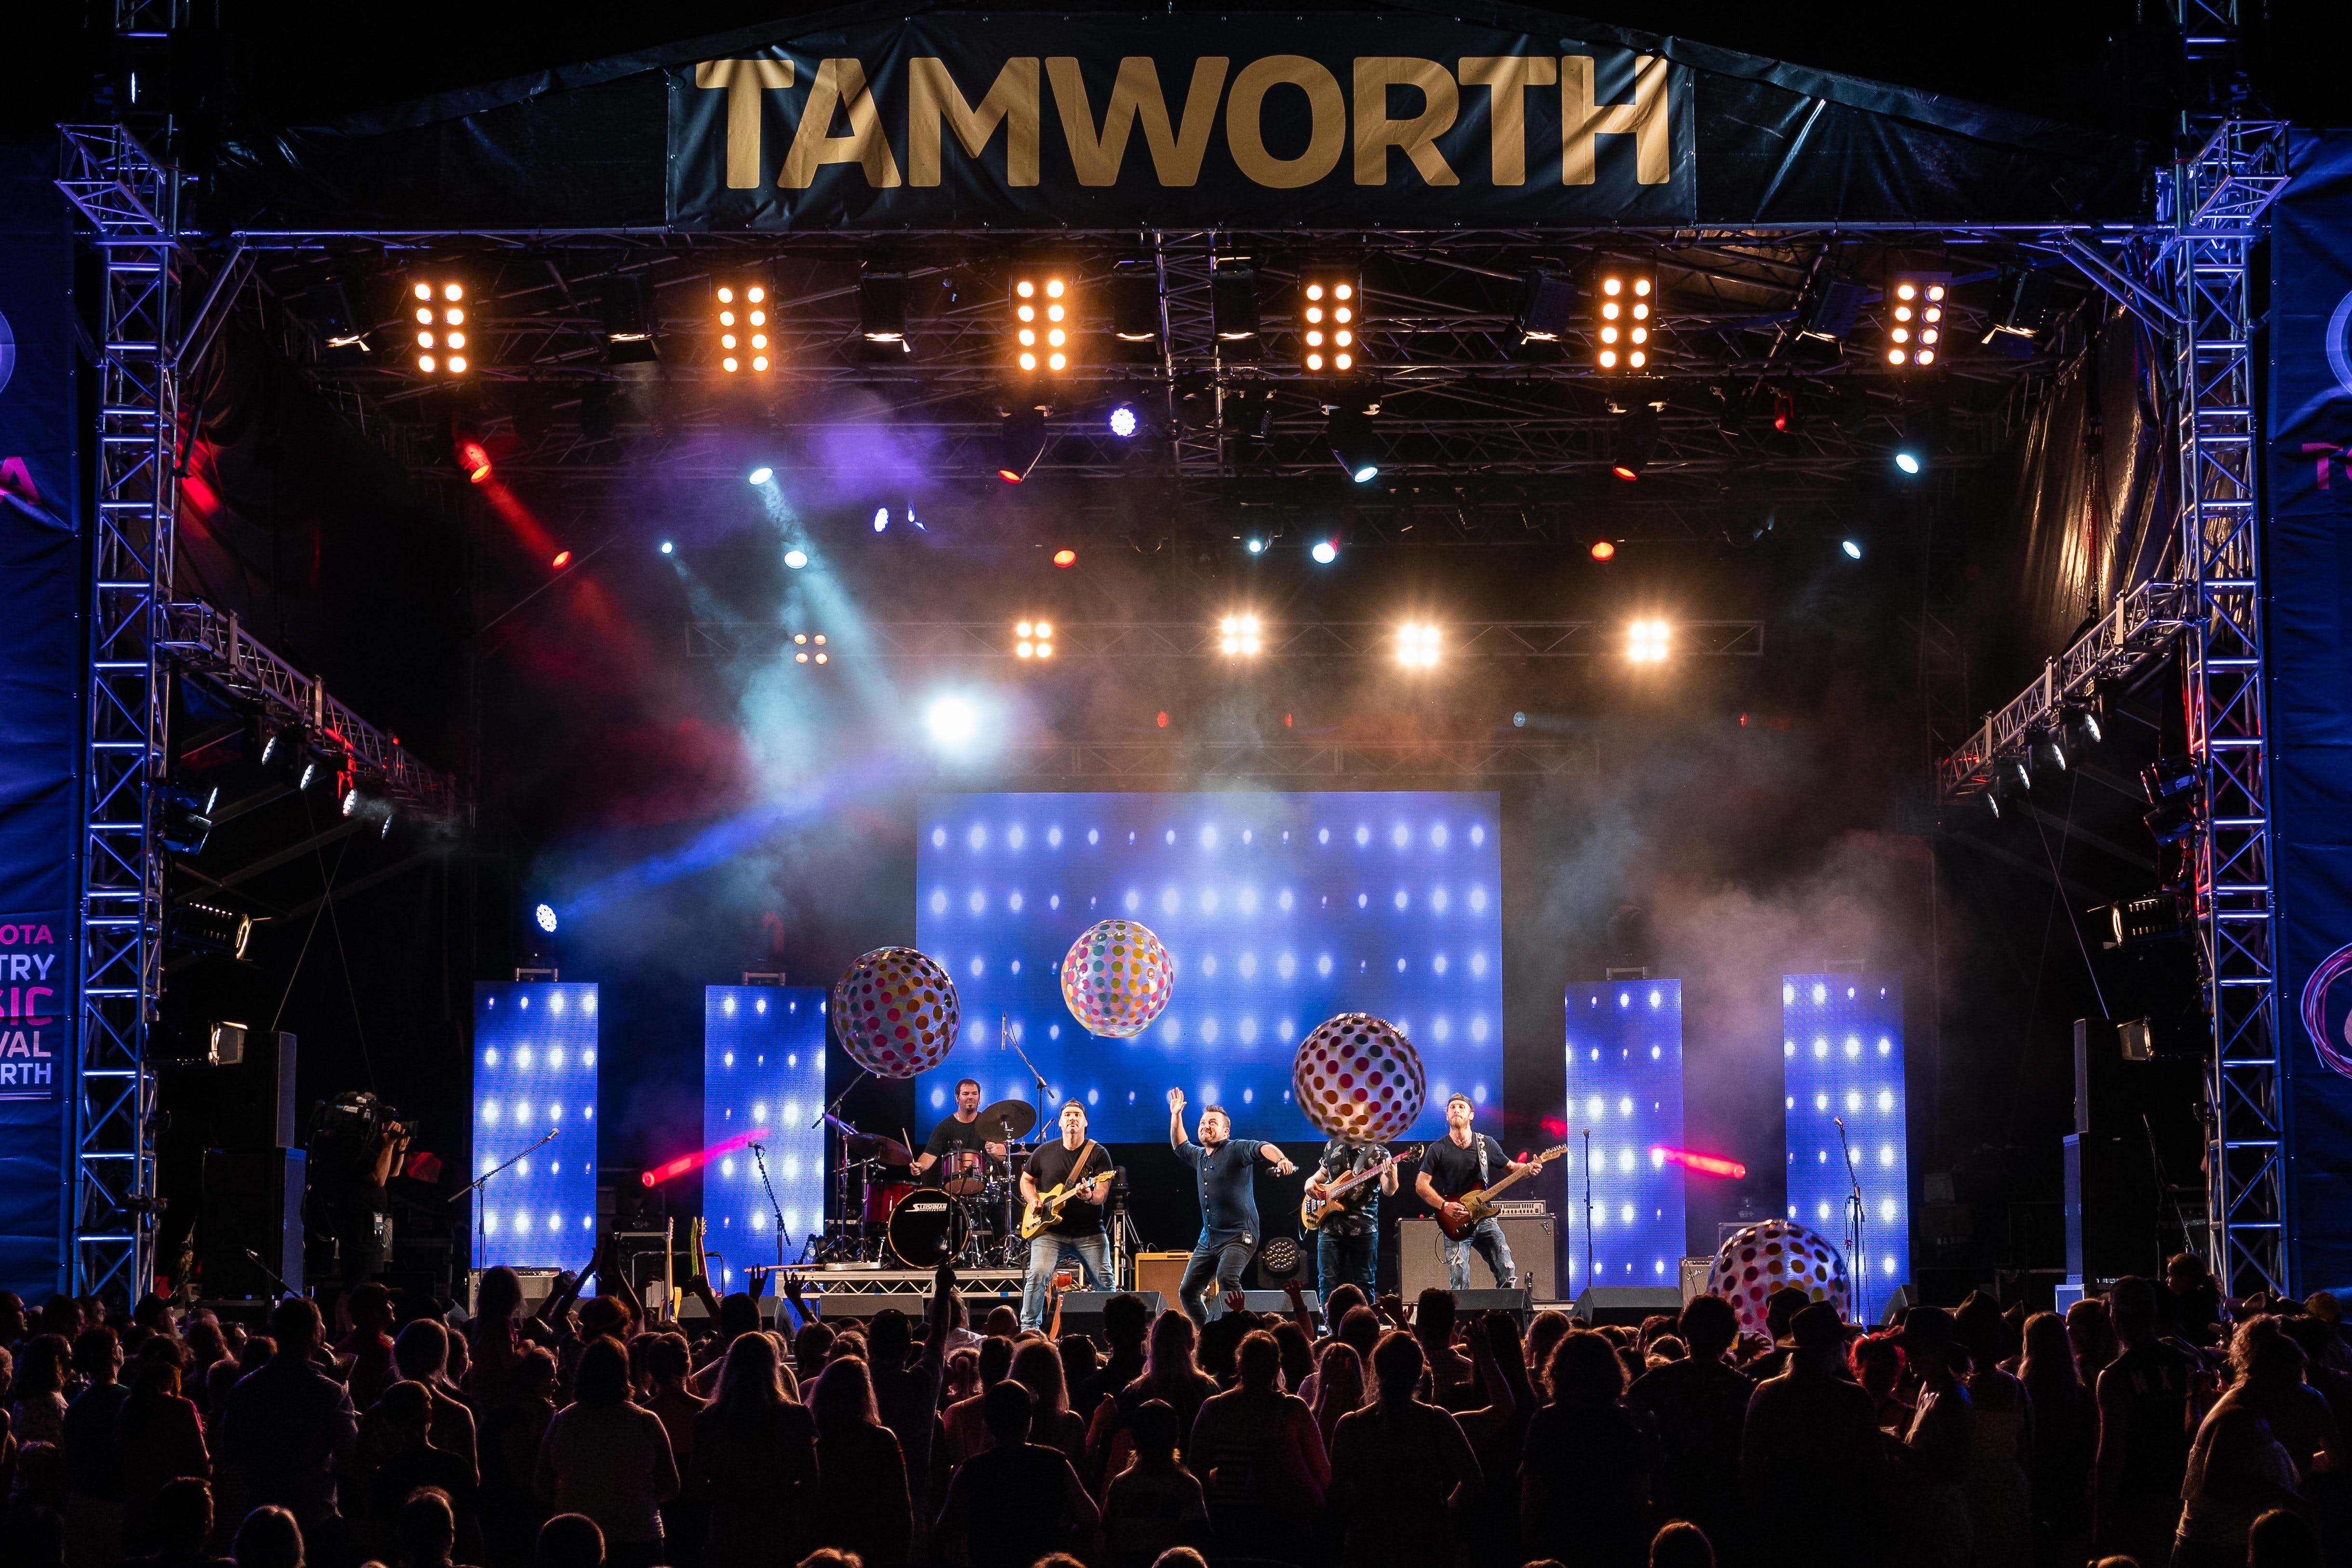 Toyota Country Music Festival Tamworth - Tourism Guide